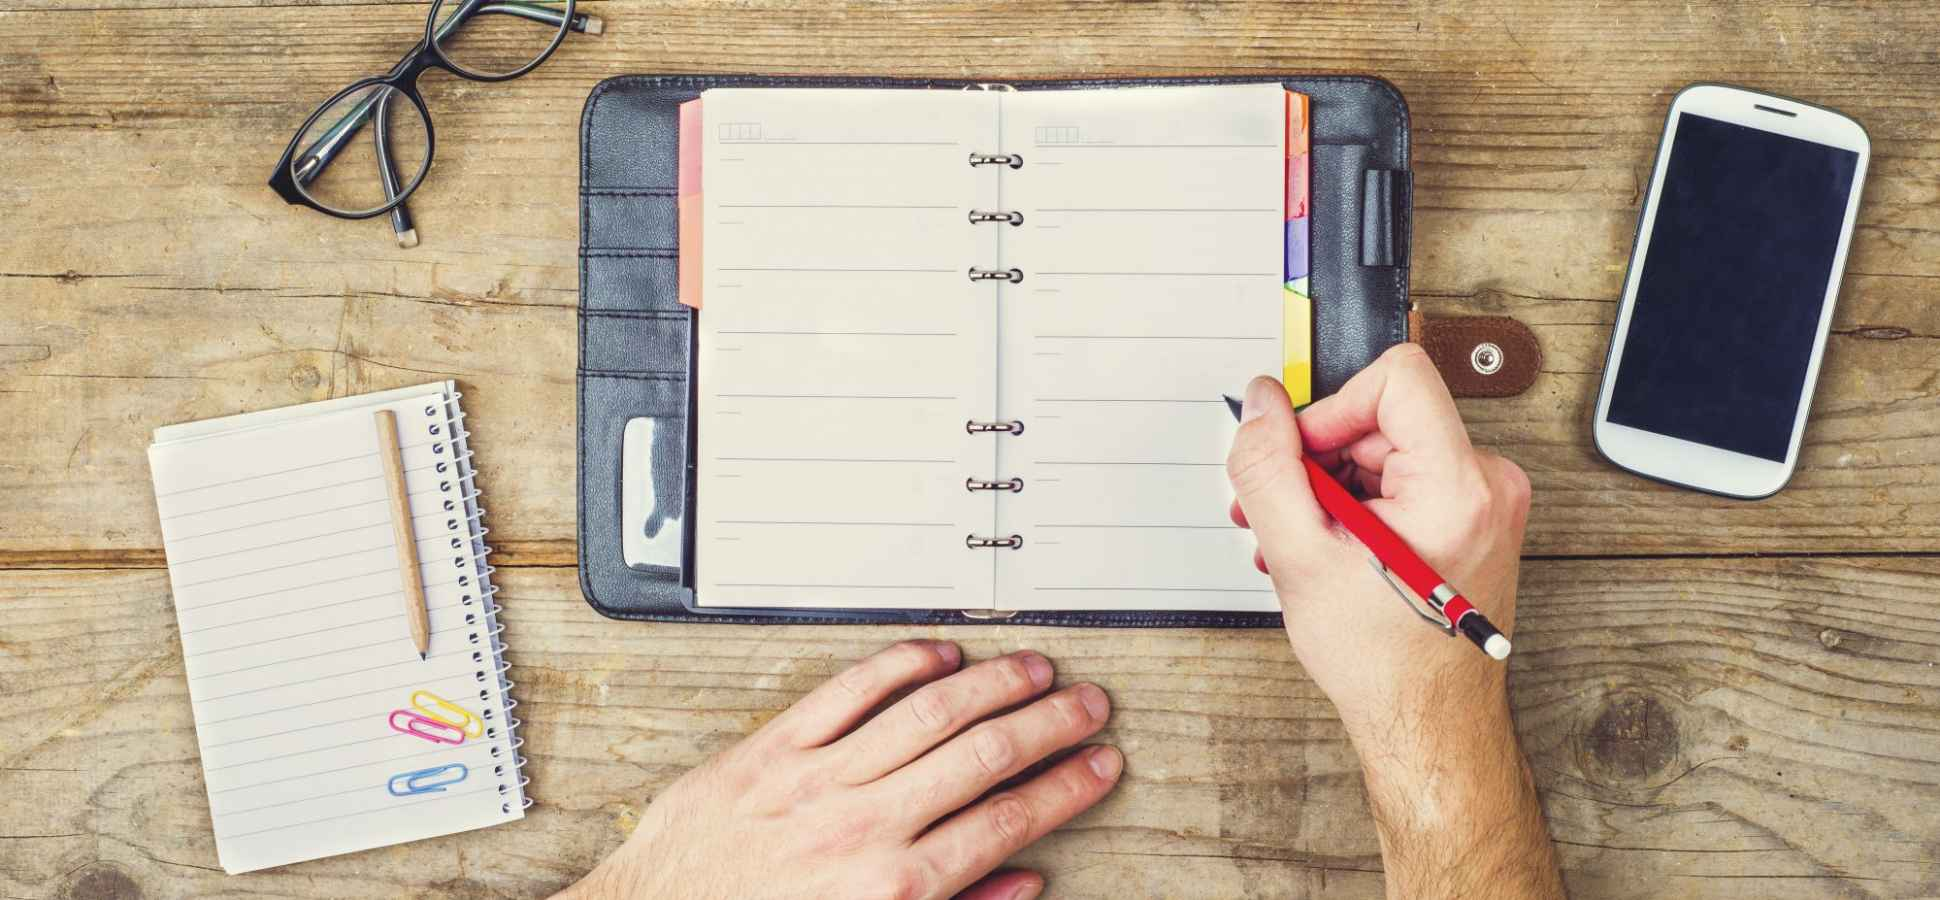 Set Yourself Up for a Successful Week With This 15-Minute Checklist